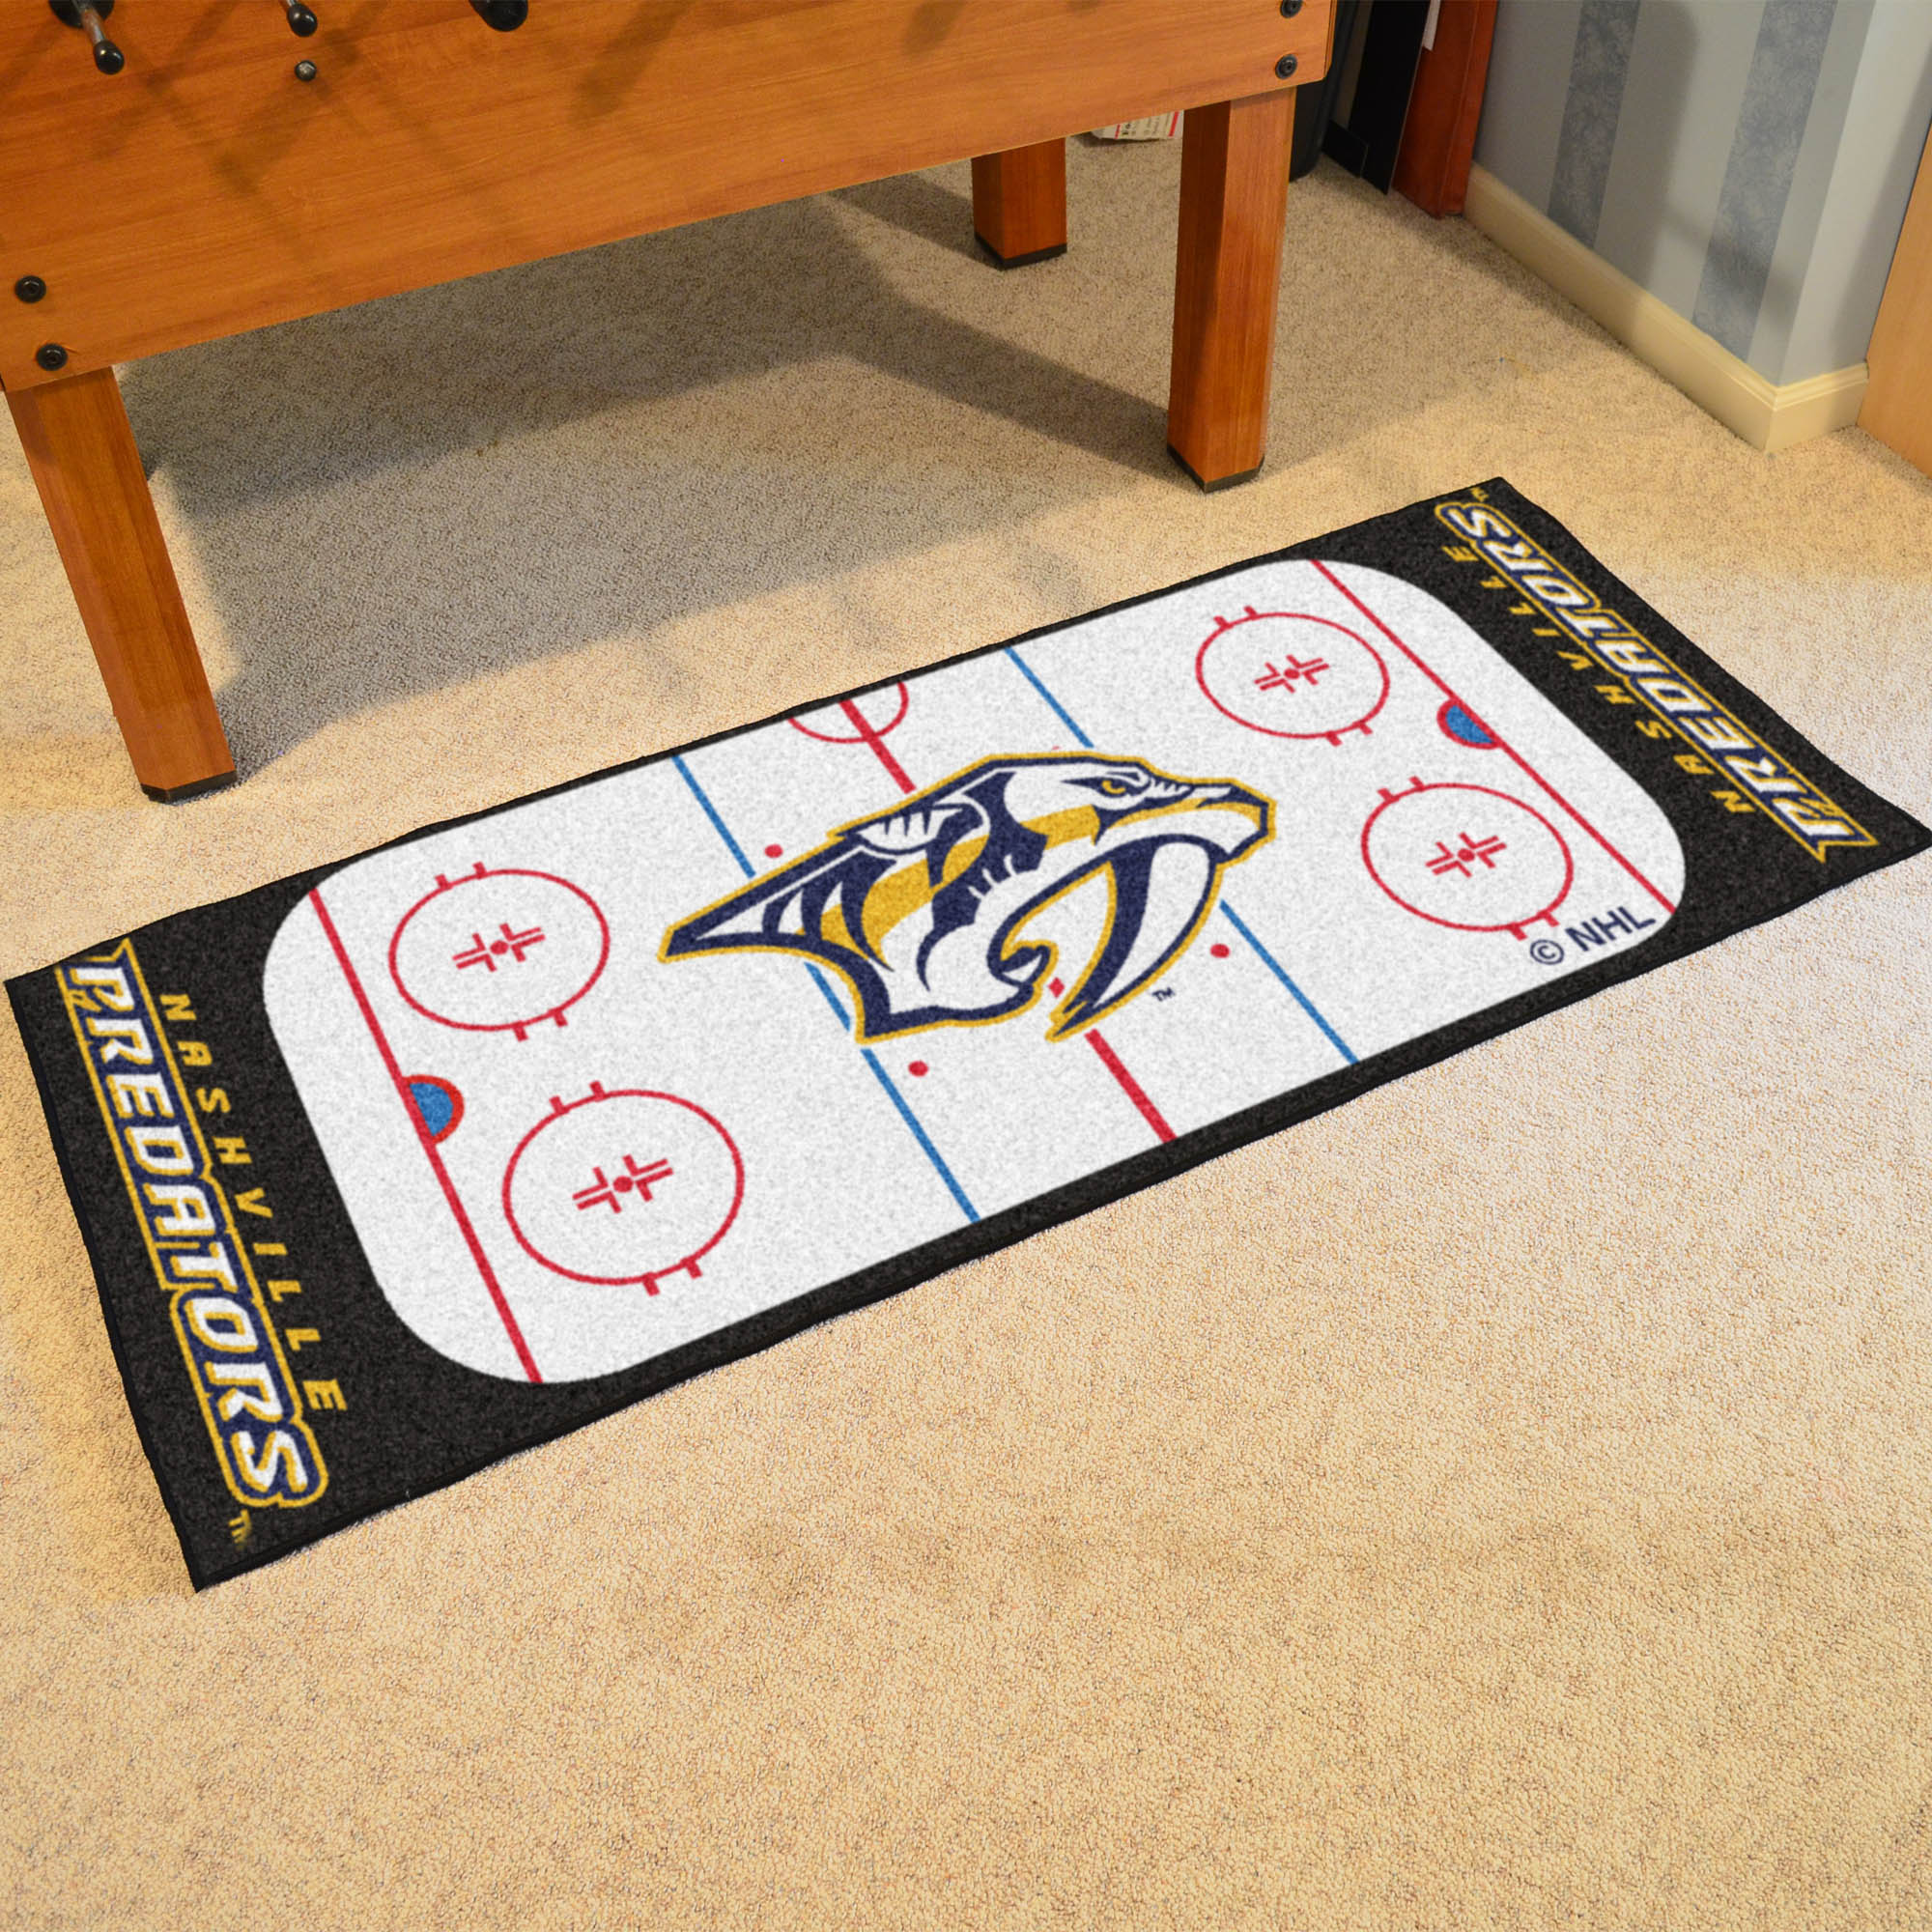 Nashville Predators 30 x 72 Hockey Rink Carpet Runner